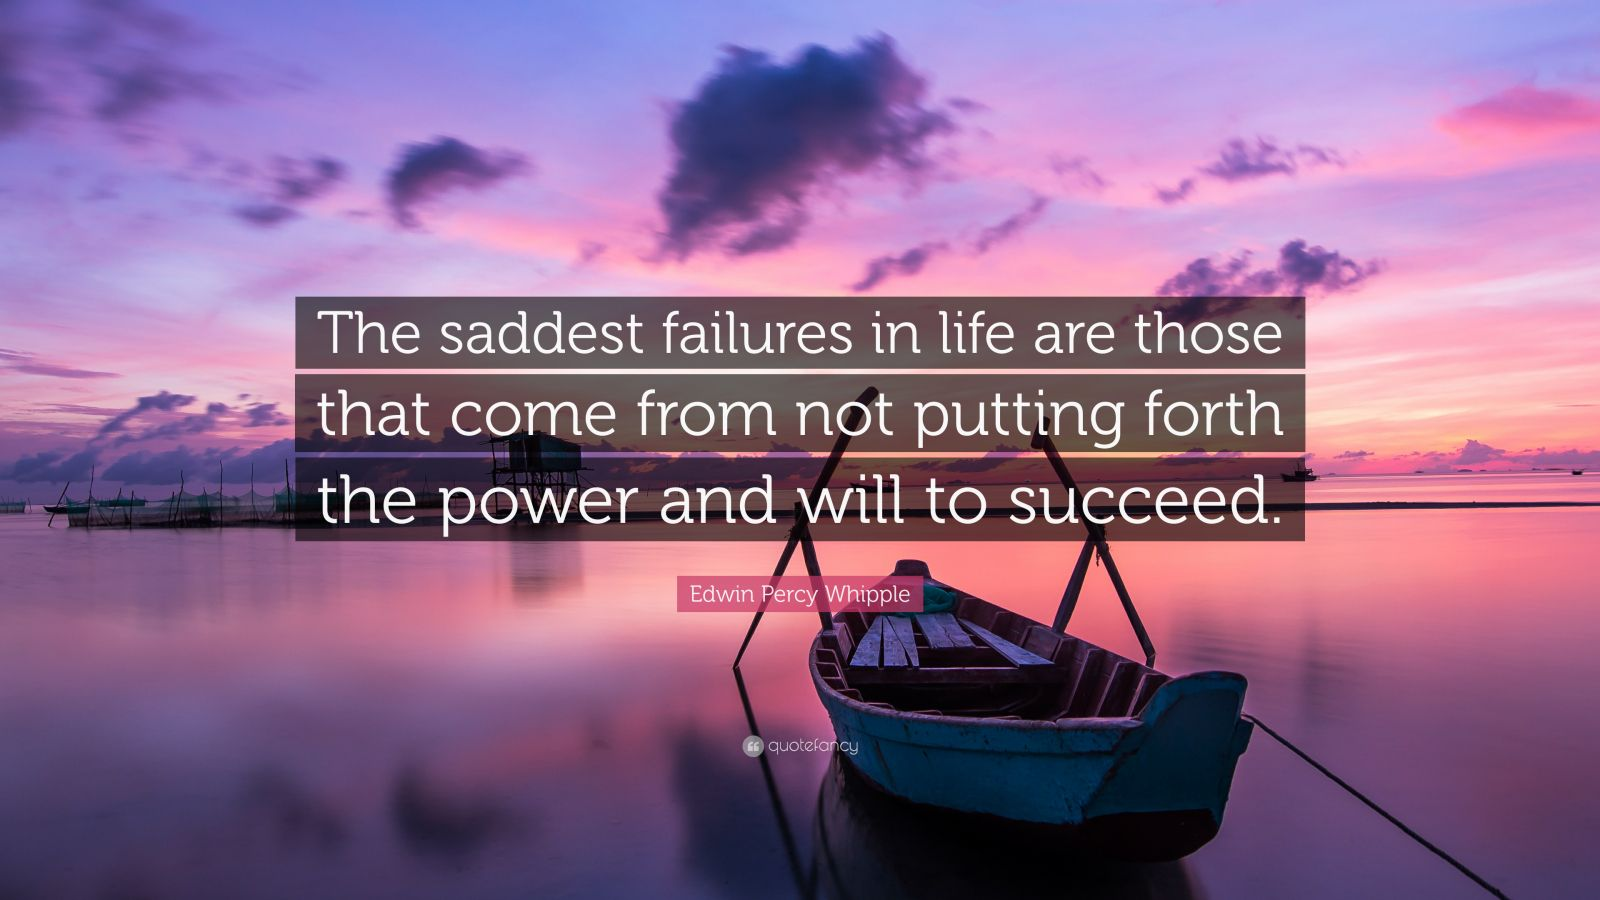 """Edwin Percy Whipple Quote: """"The saddest failures in life are those that come from not putting forth the power and will to succeed."""""""